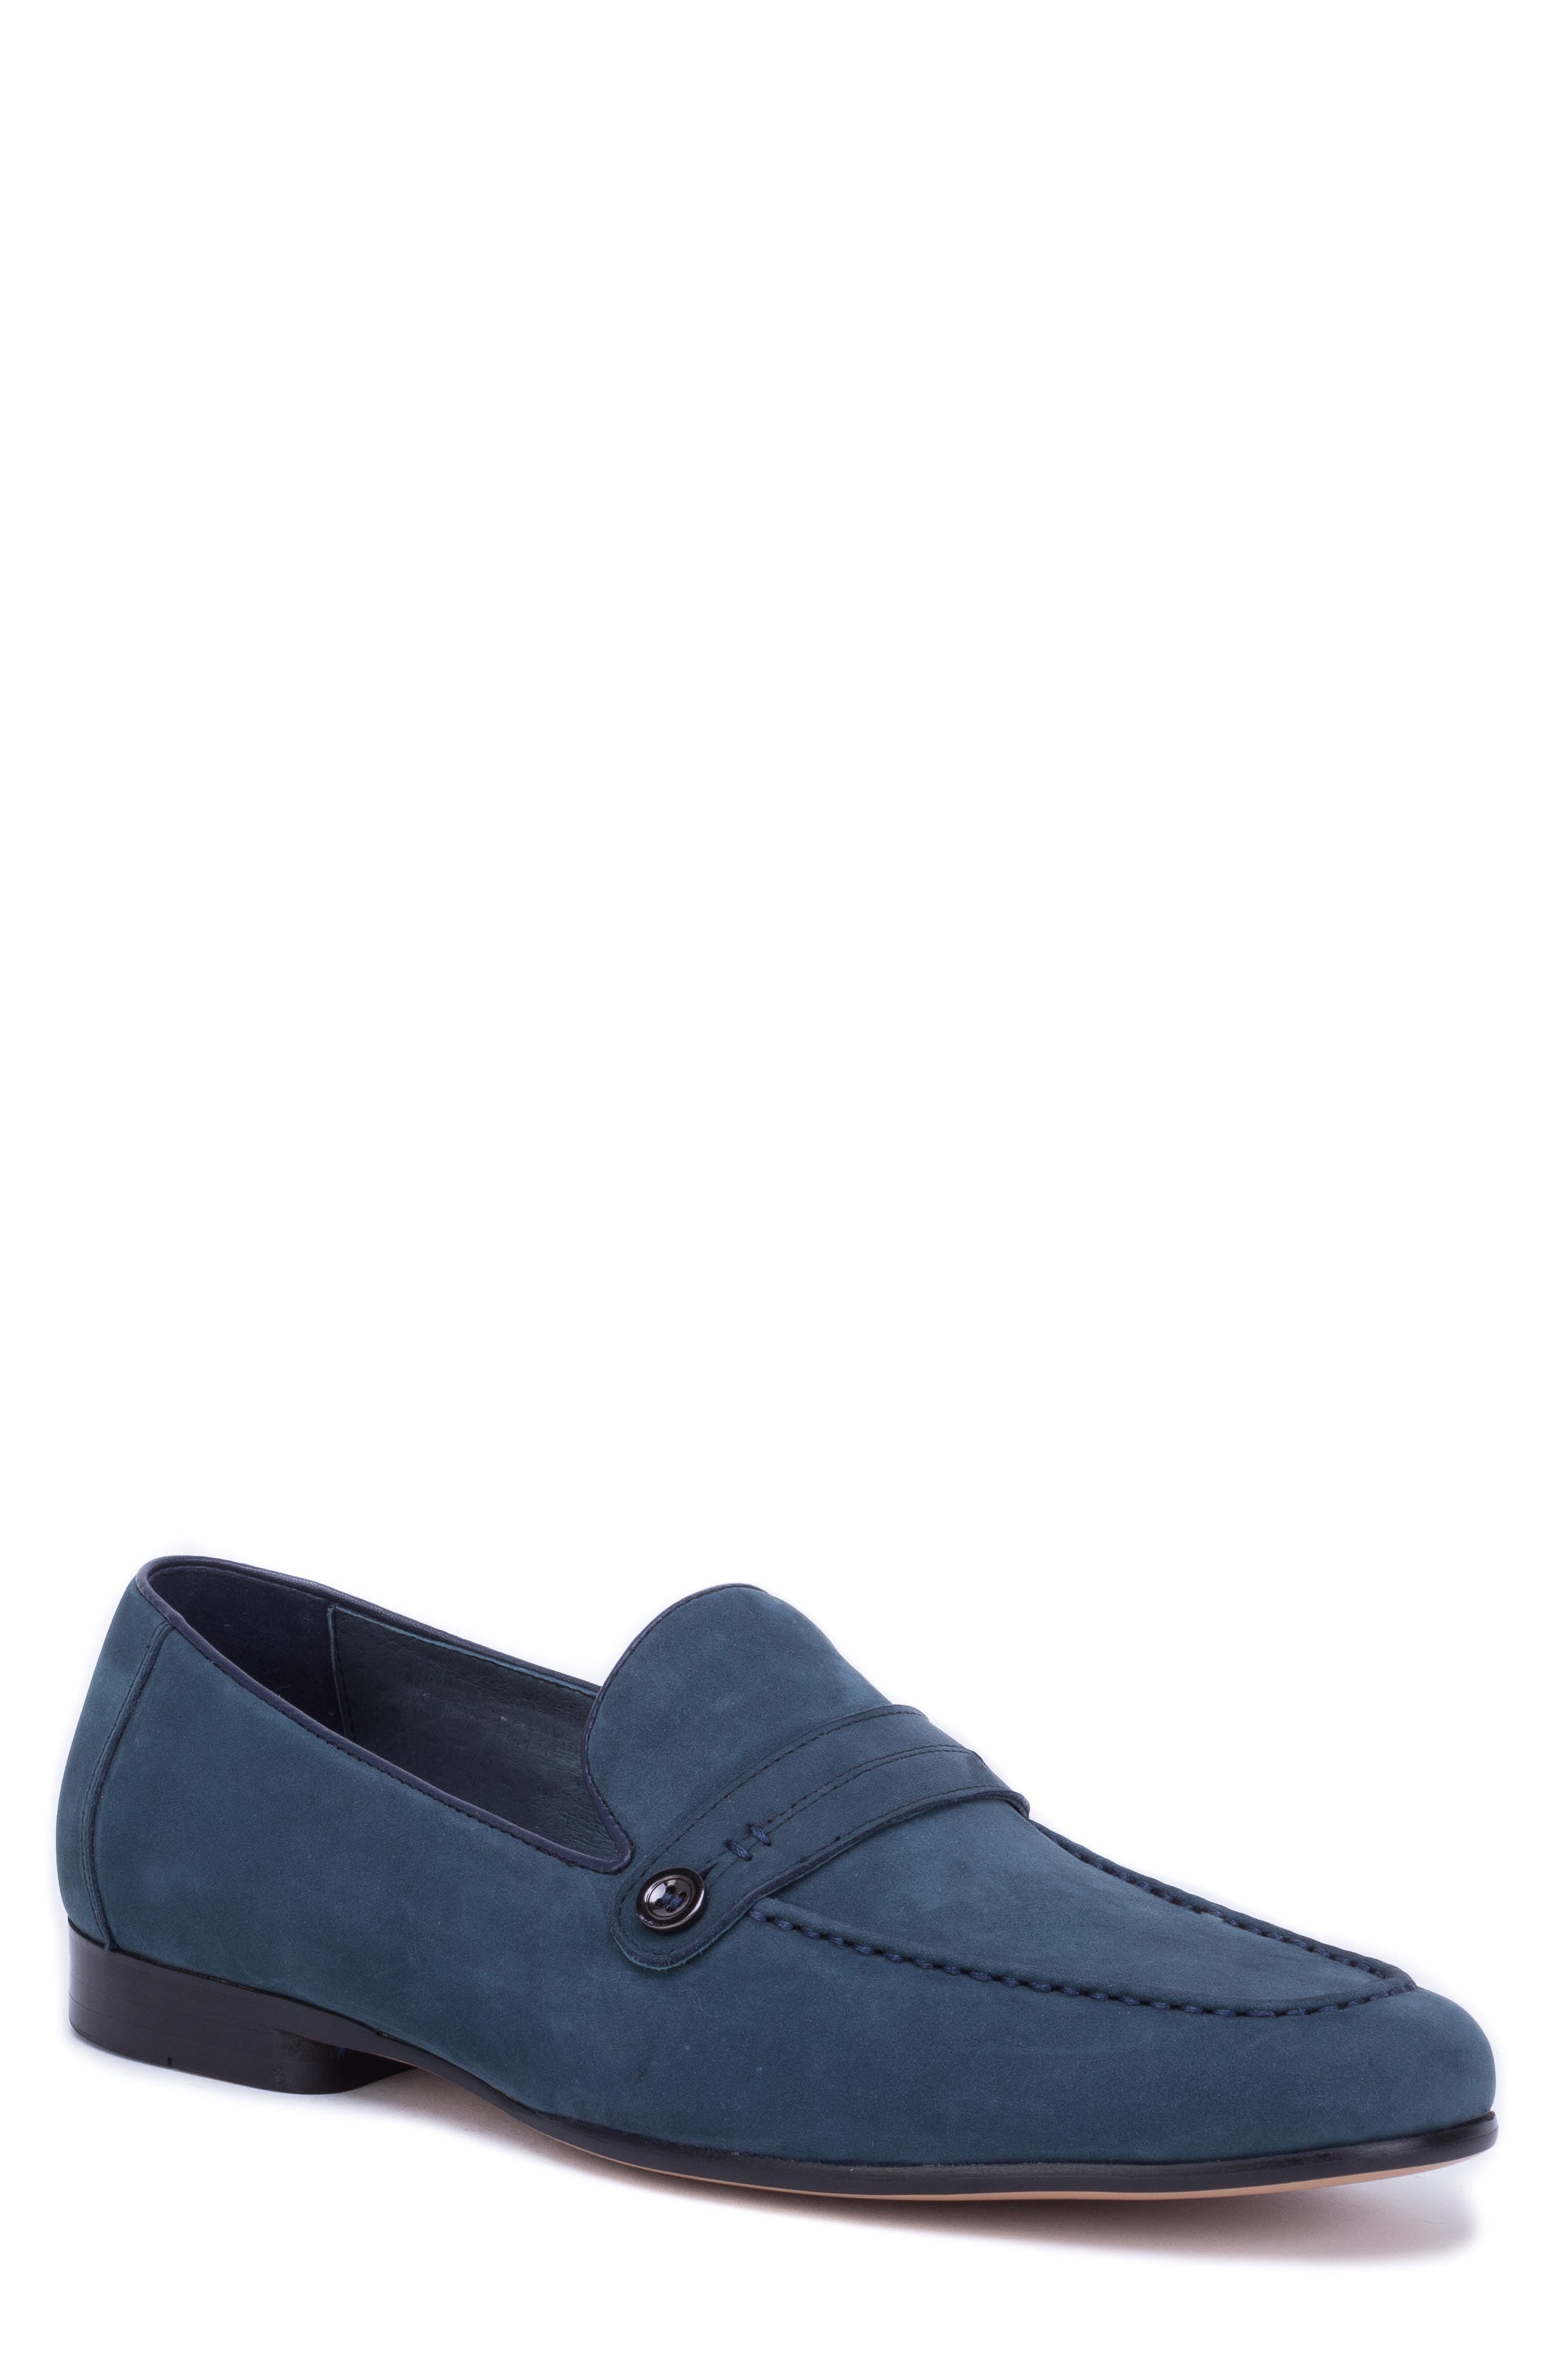 Robert Graham Norris Button Loafer, Blue